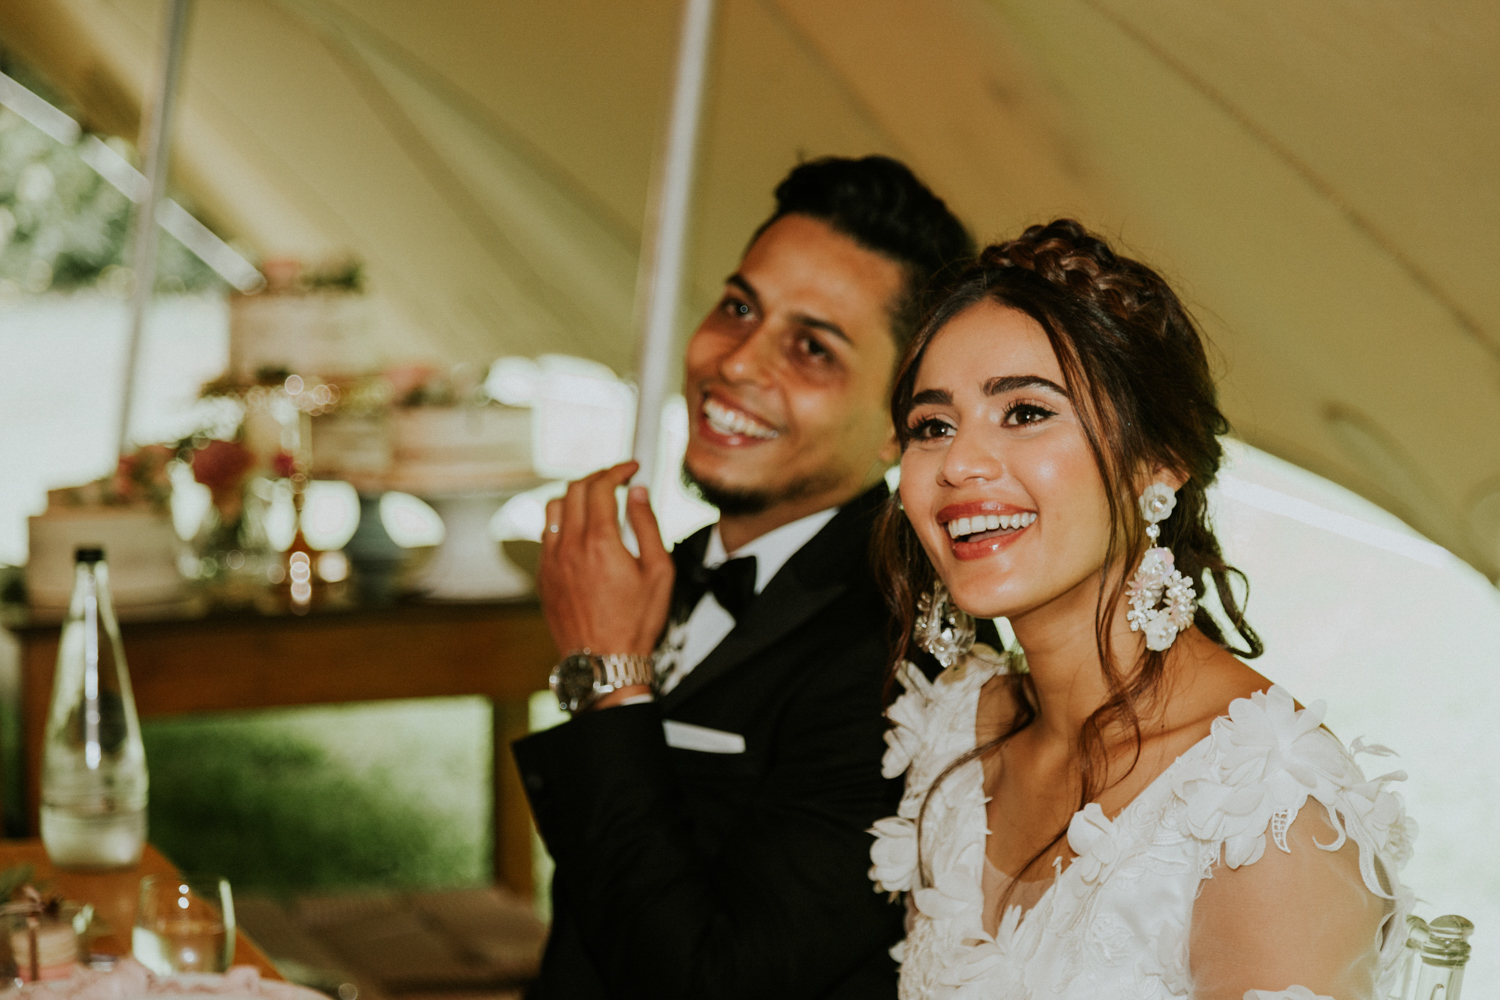 Forest Wedding Cape Town - Bianca Asher Photography-37.jpg